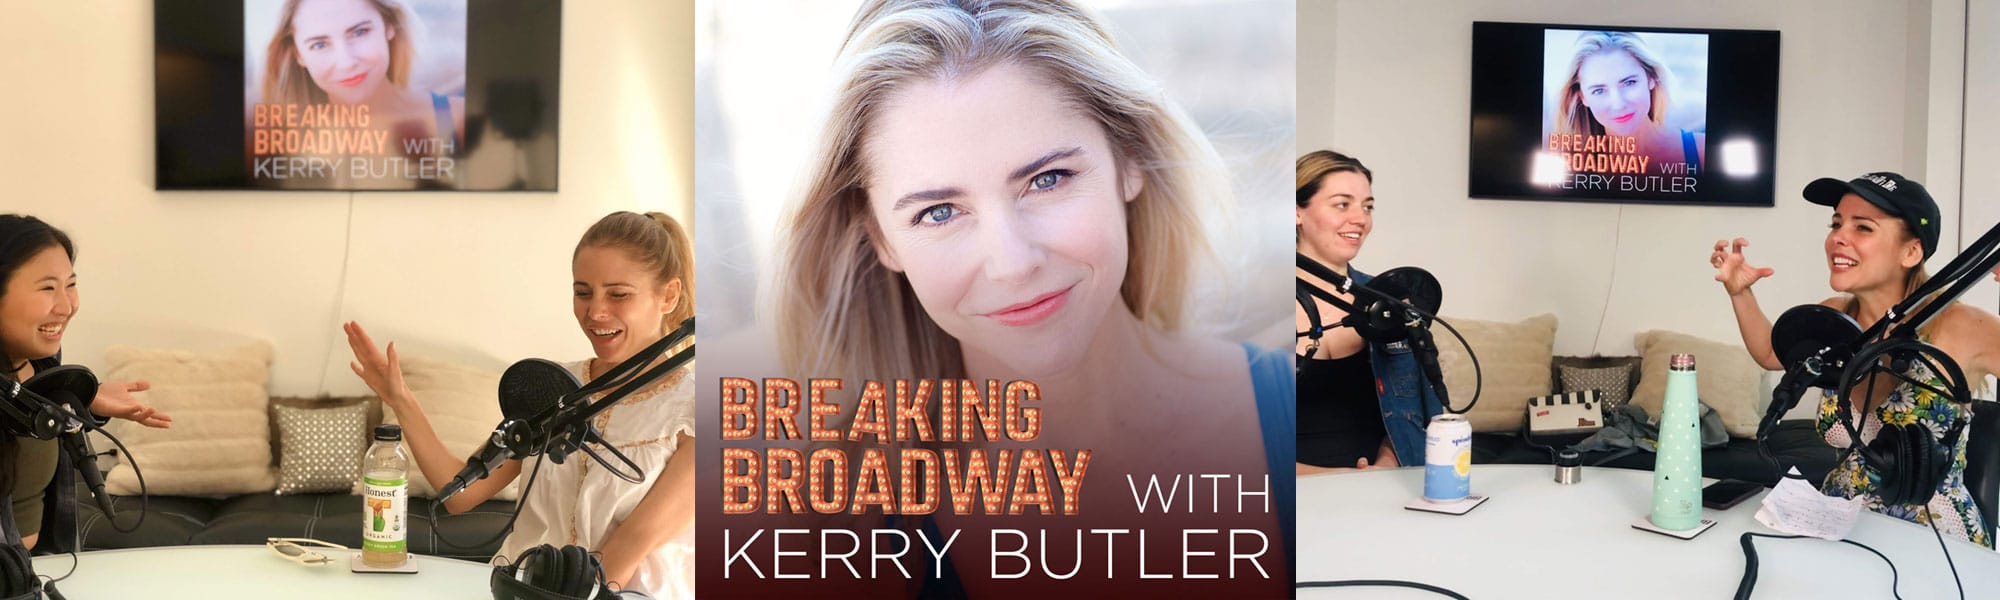 Breaking Broadway Hosted by Kerry Butler